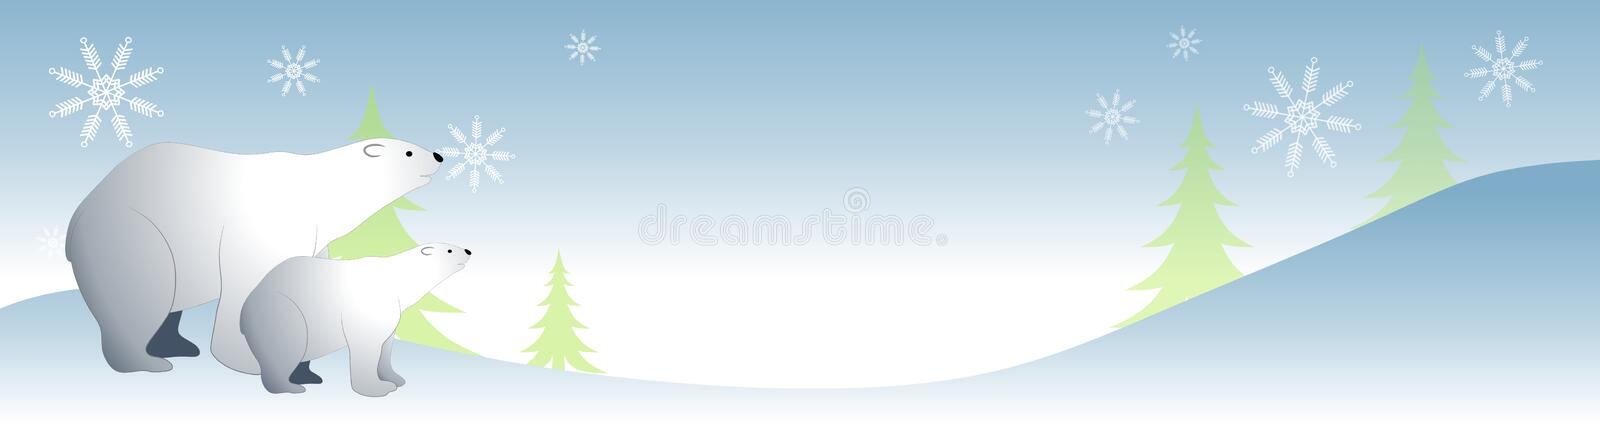 Download Polar Bears in The Snow stock illustration. Image of snowflake - 6712530